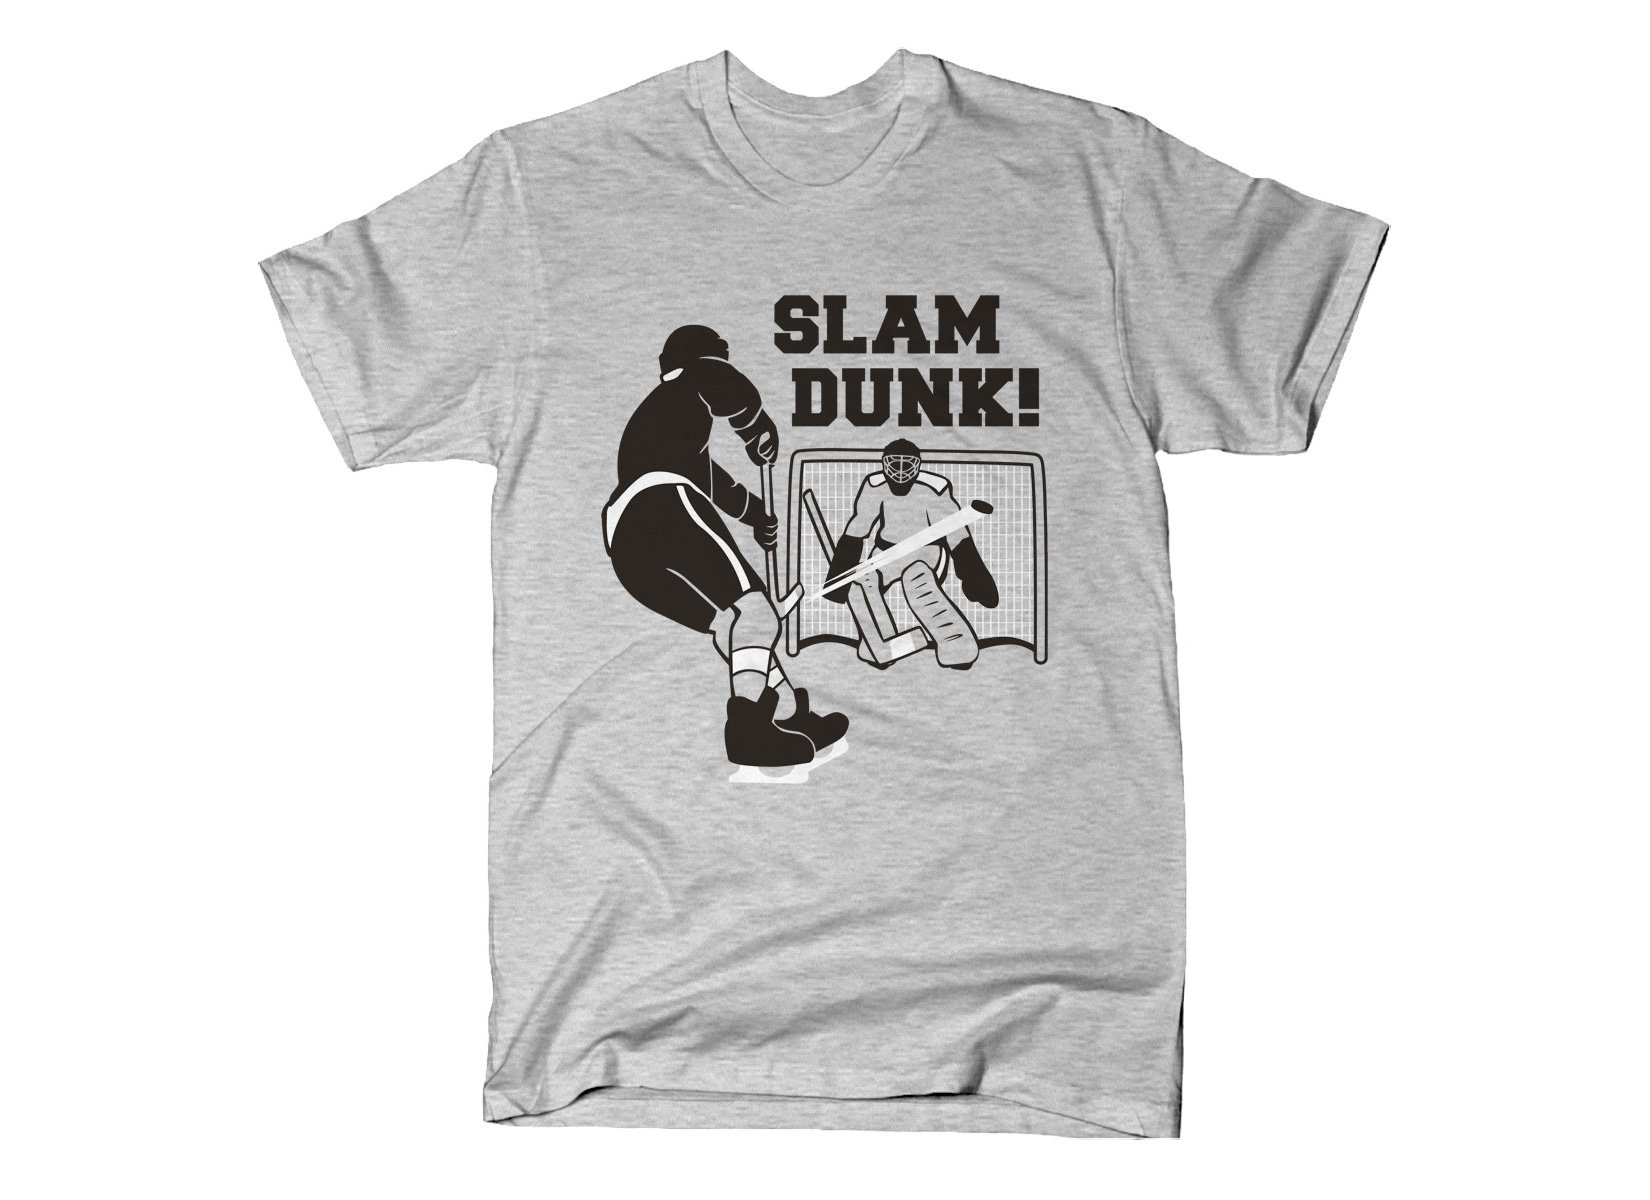 Slam Dunk! on Mens T-Shirt